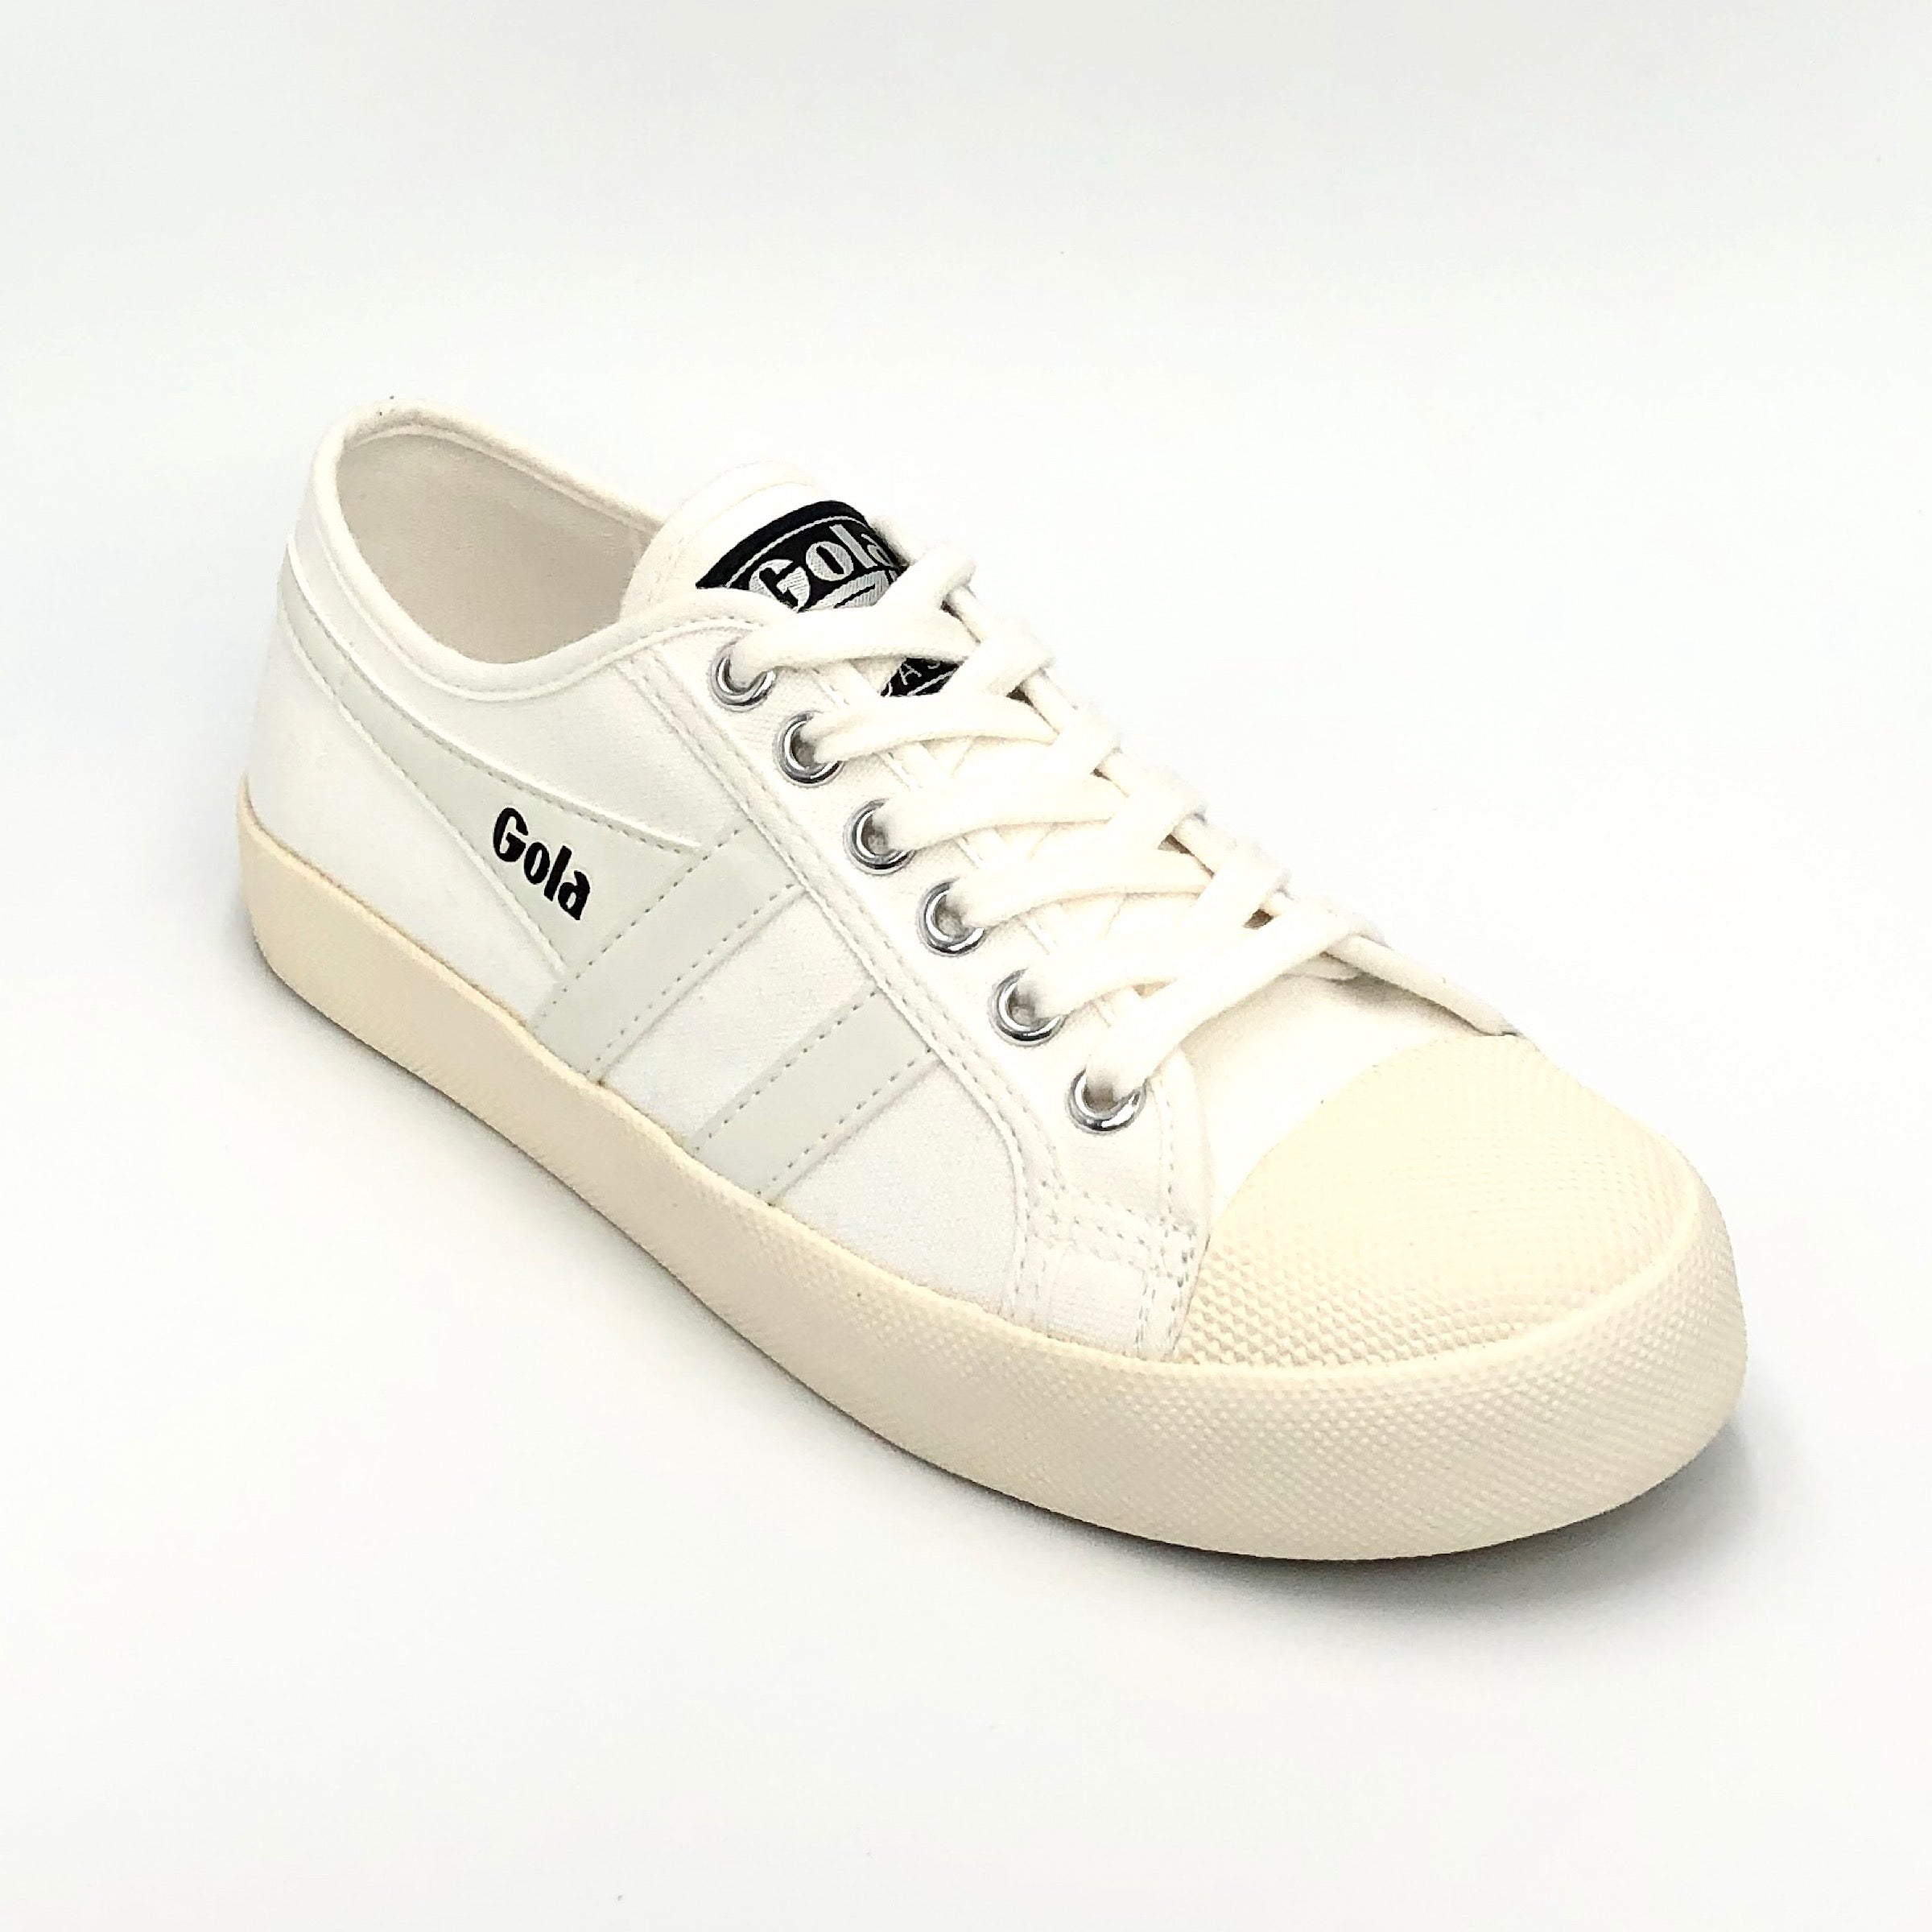 The Vegan Sneaker in Off White